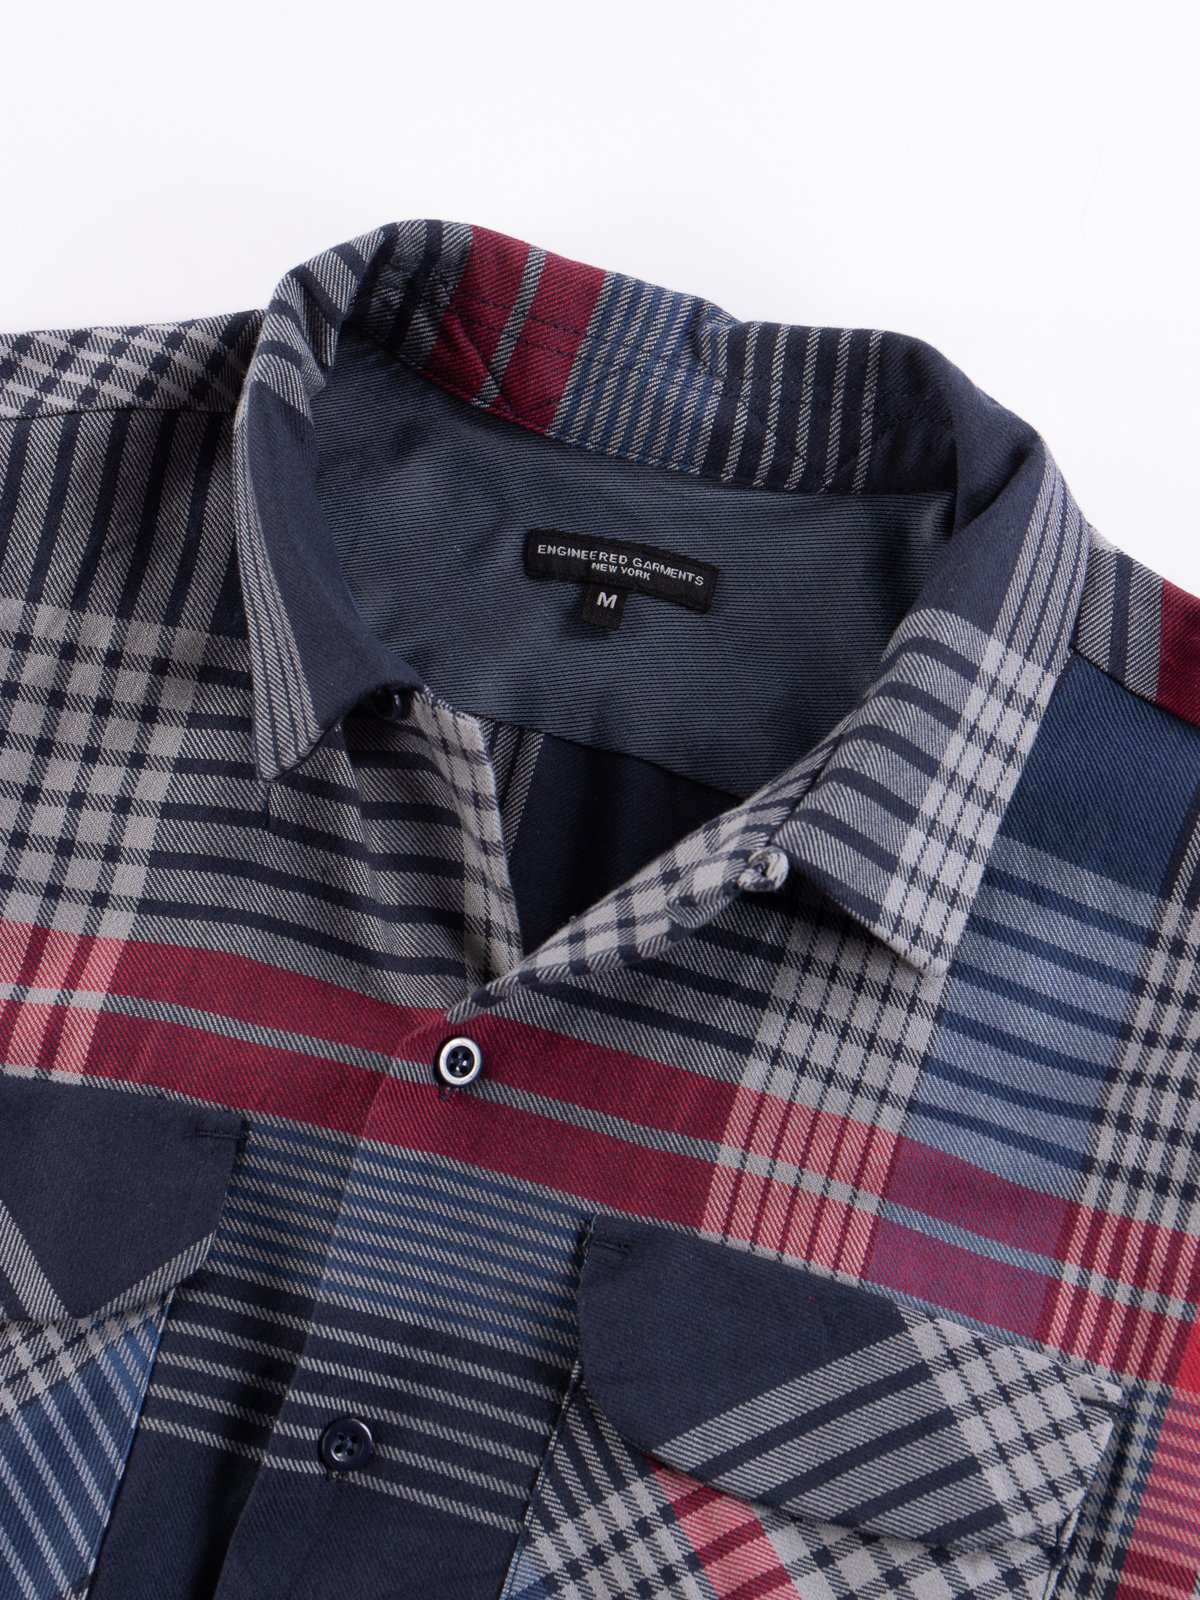 Navy/Grey/Red Cotton Twill Classic Shirt - Image 7